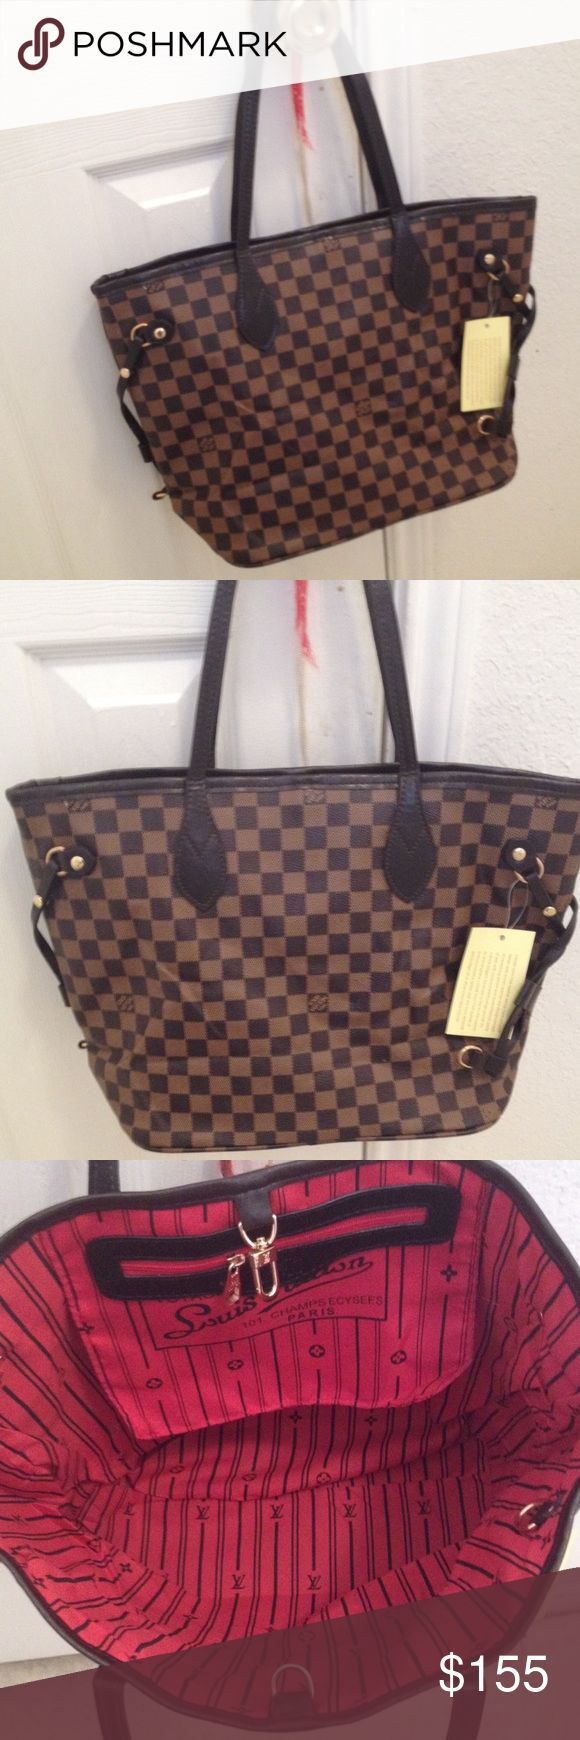 Red checked mm bag New!! Cute bag. Price reflect auth. I accepting reasonable offer Louis Vuitton Bags Shoulder Bags